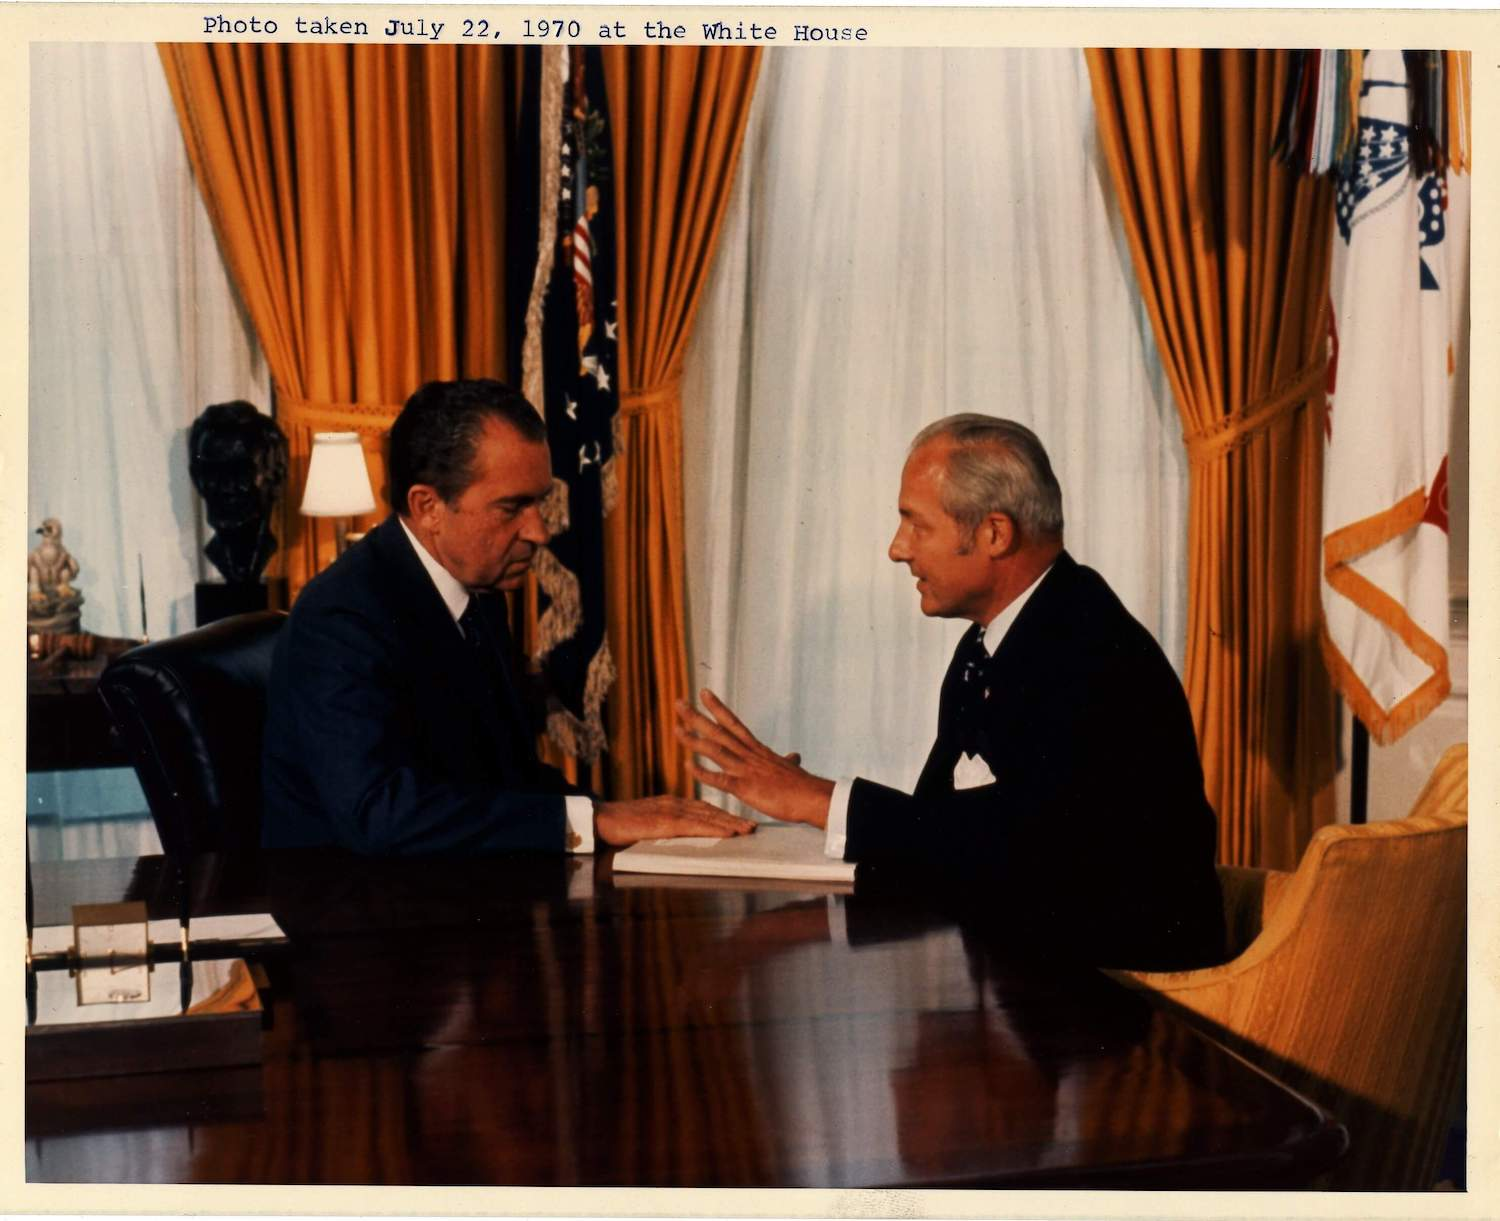 Robert H. Michel with Nixon in The White House